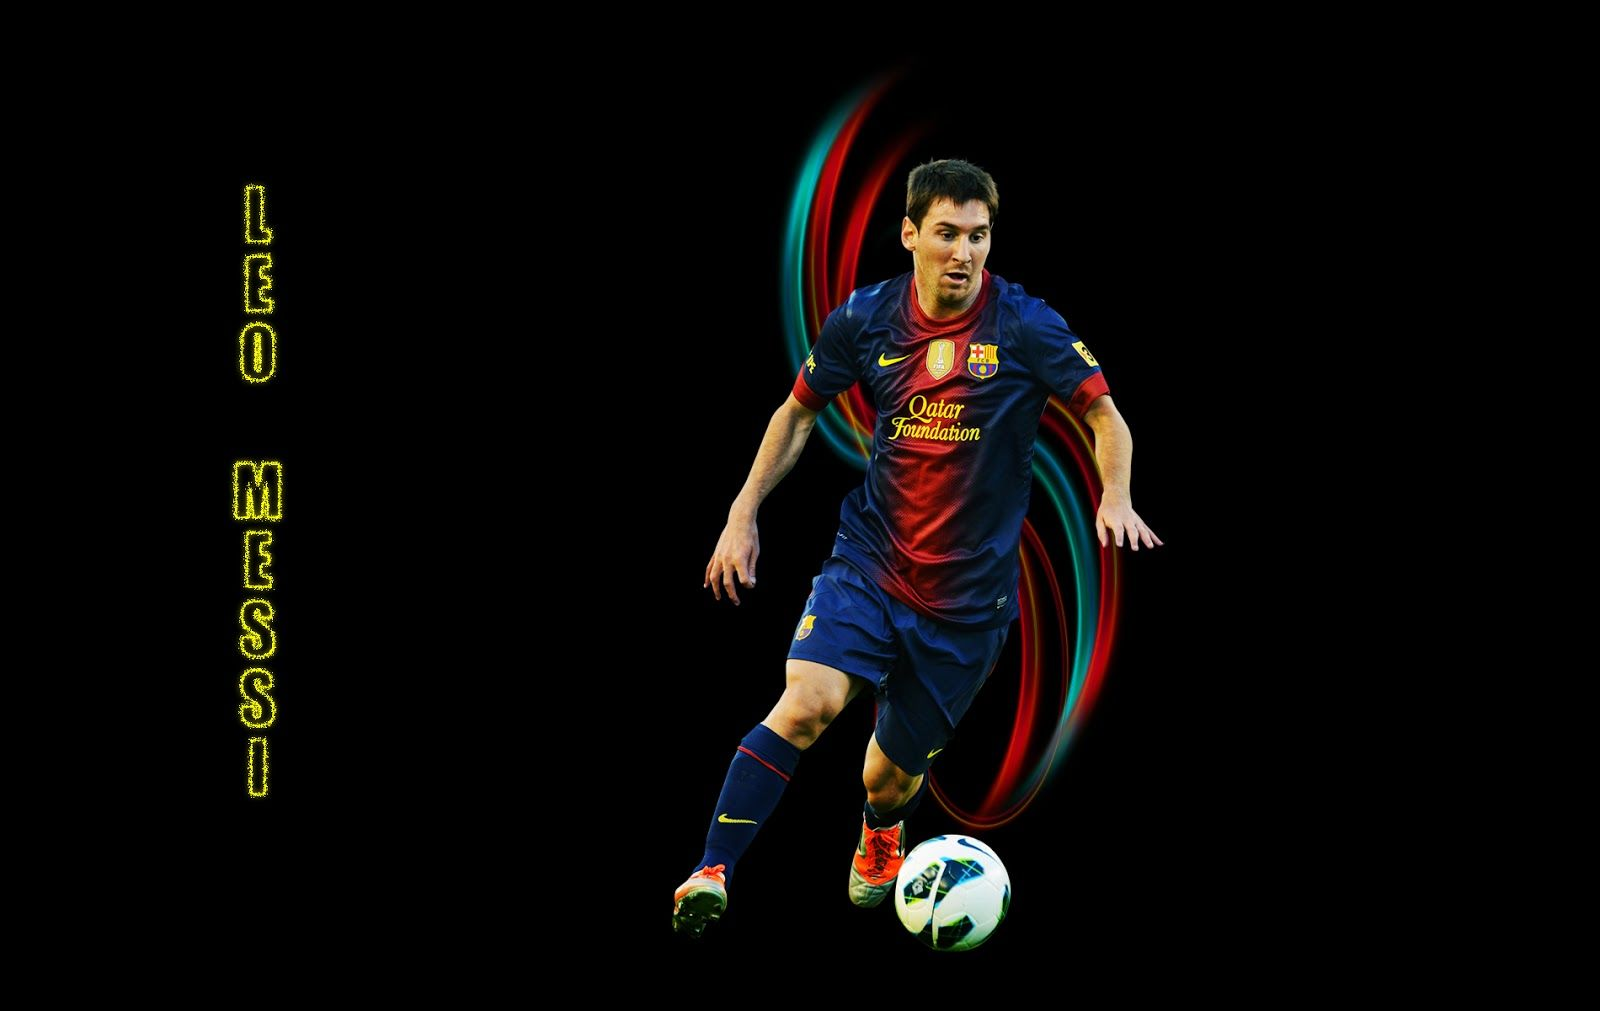 Lionel Messi 2015 Wallpapers HD 1080p 1600x1011